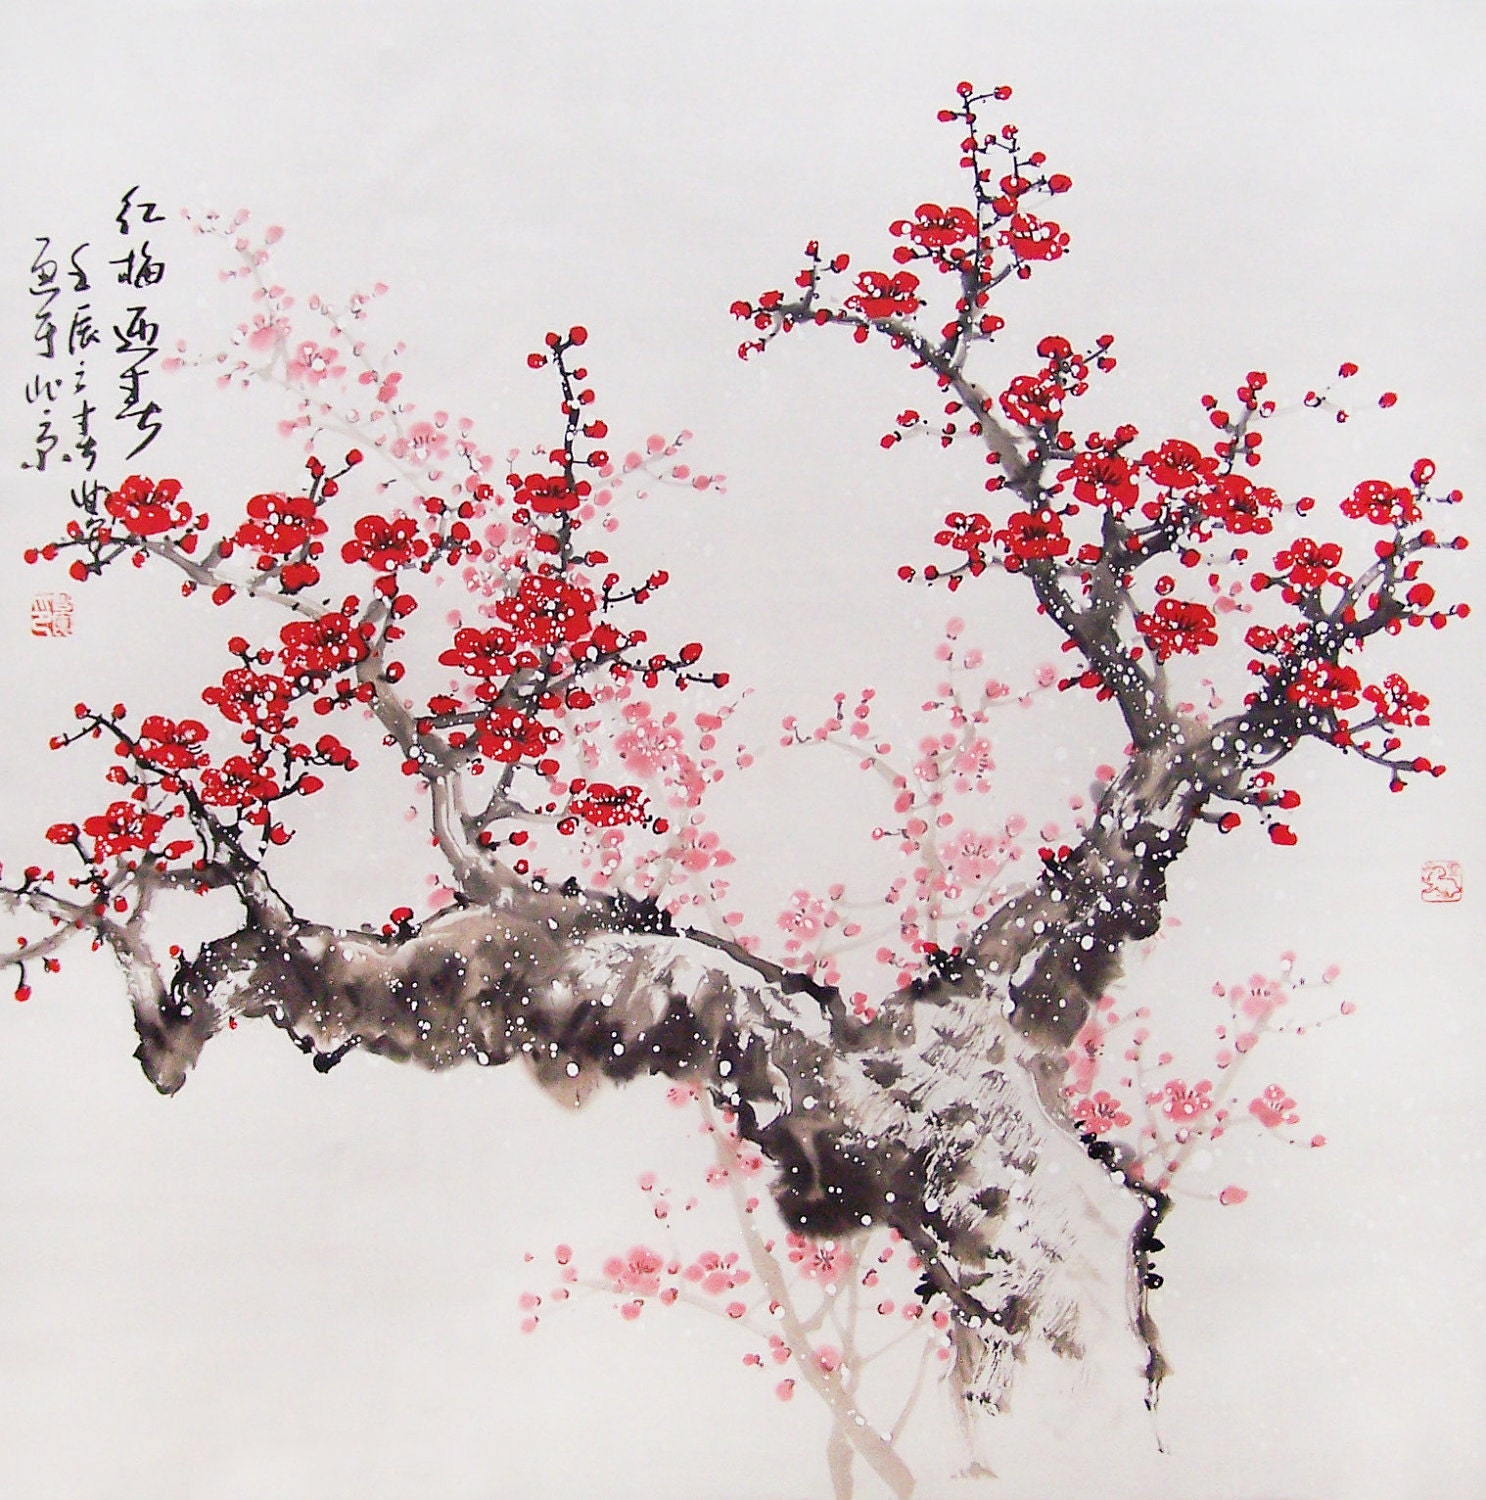 Blossom Tree Drawing: Cherry Blossom Drawing